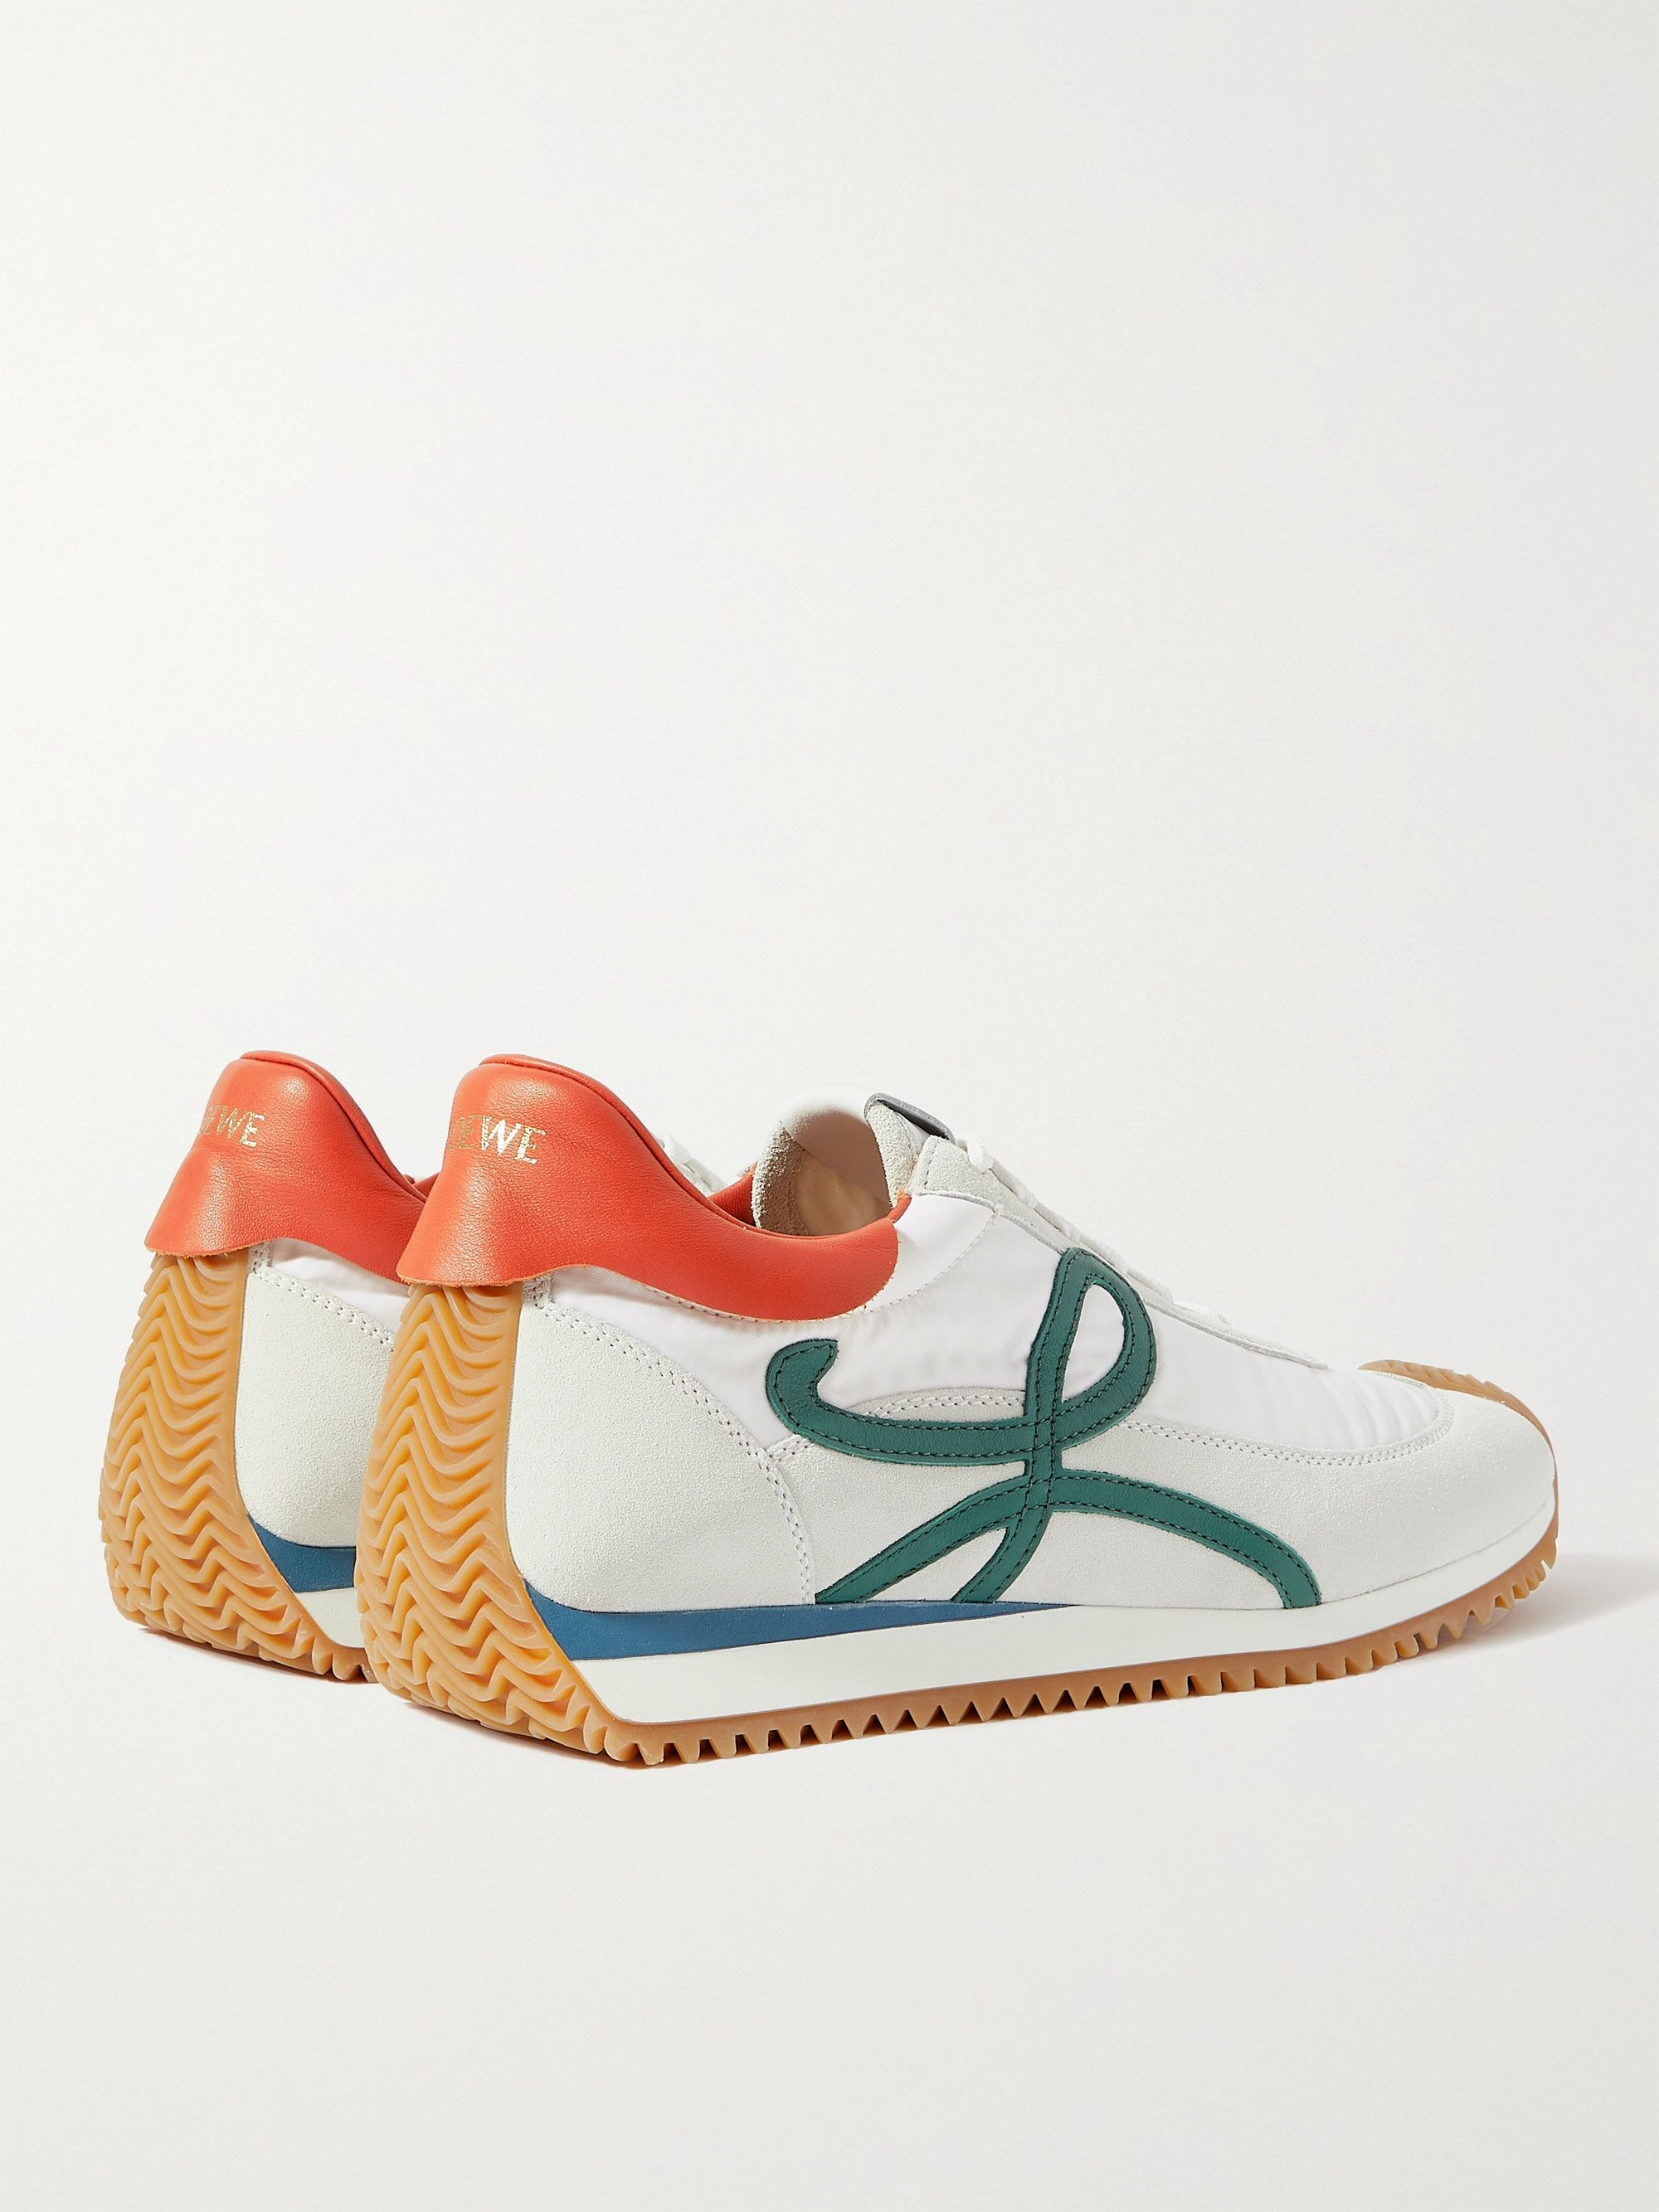 LOEWE + Paula's Ibiza Flow Runner Leather-Trimmed Nylon and Suede Sneakers